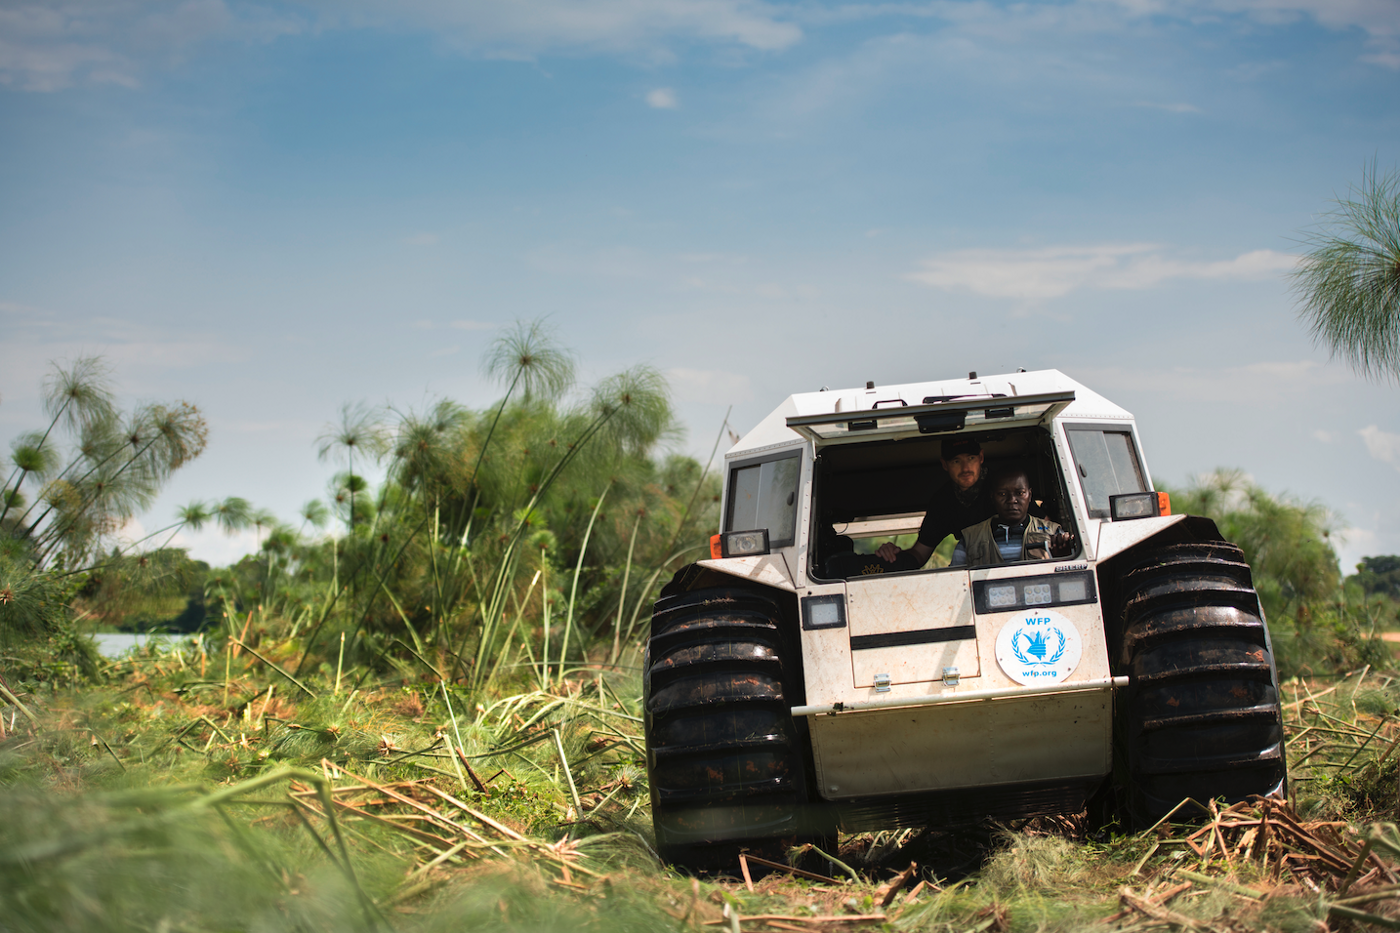 The sherp vehicle in action